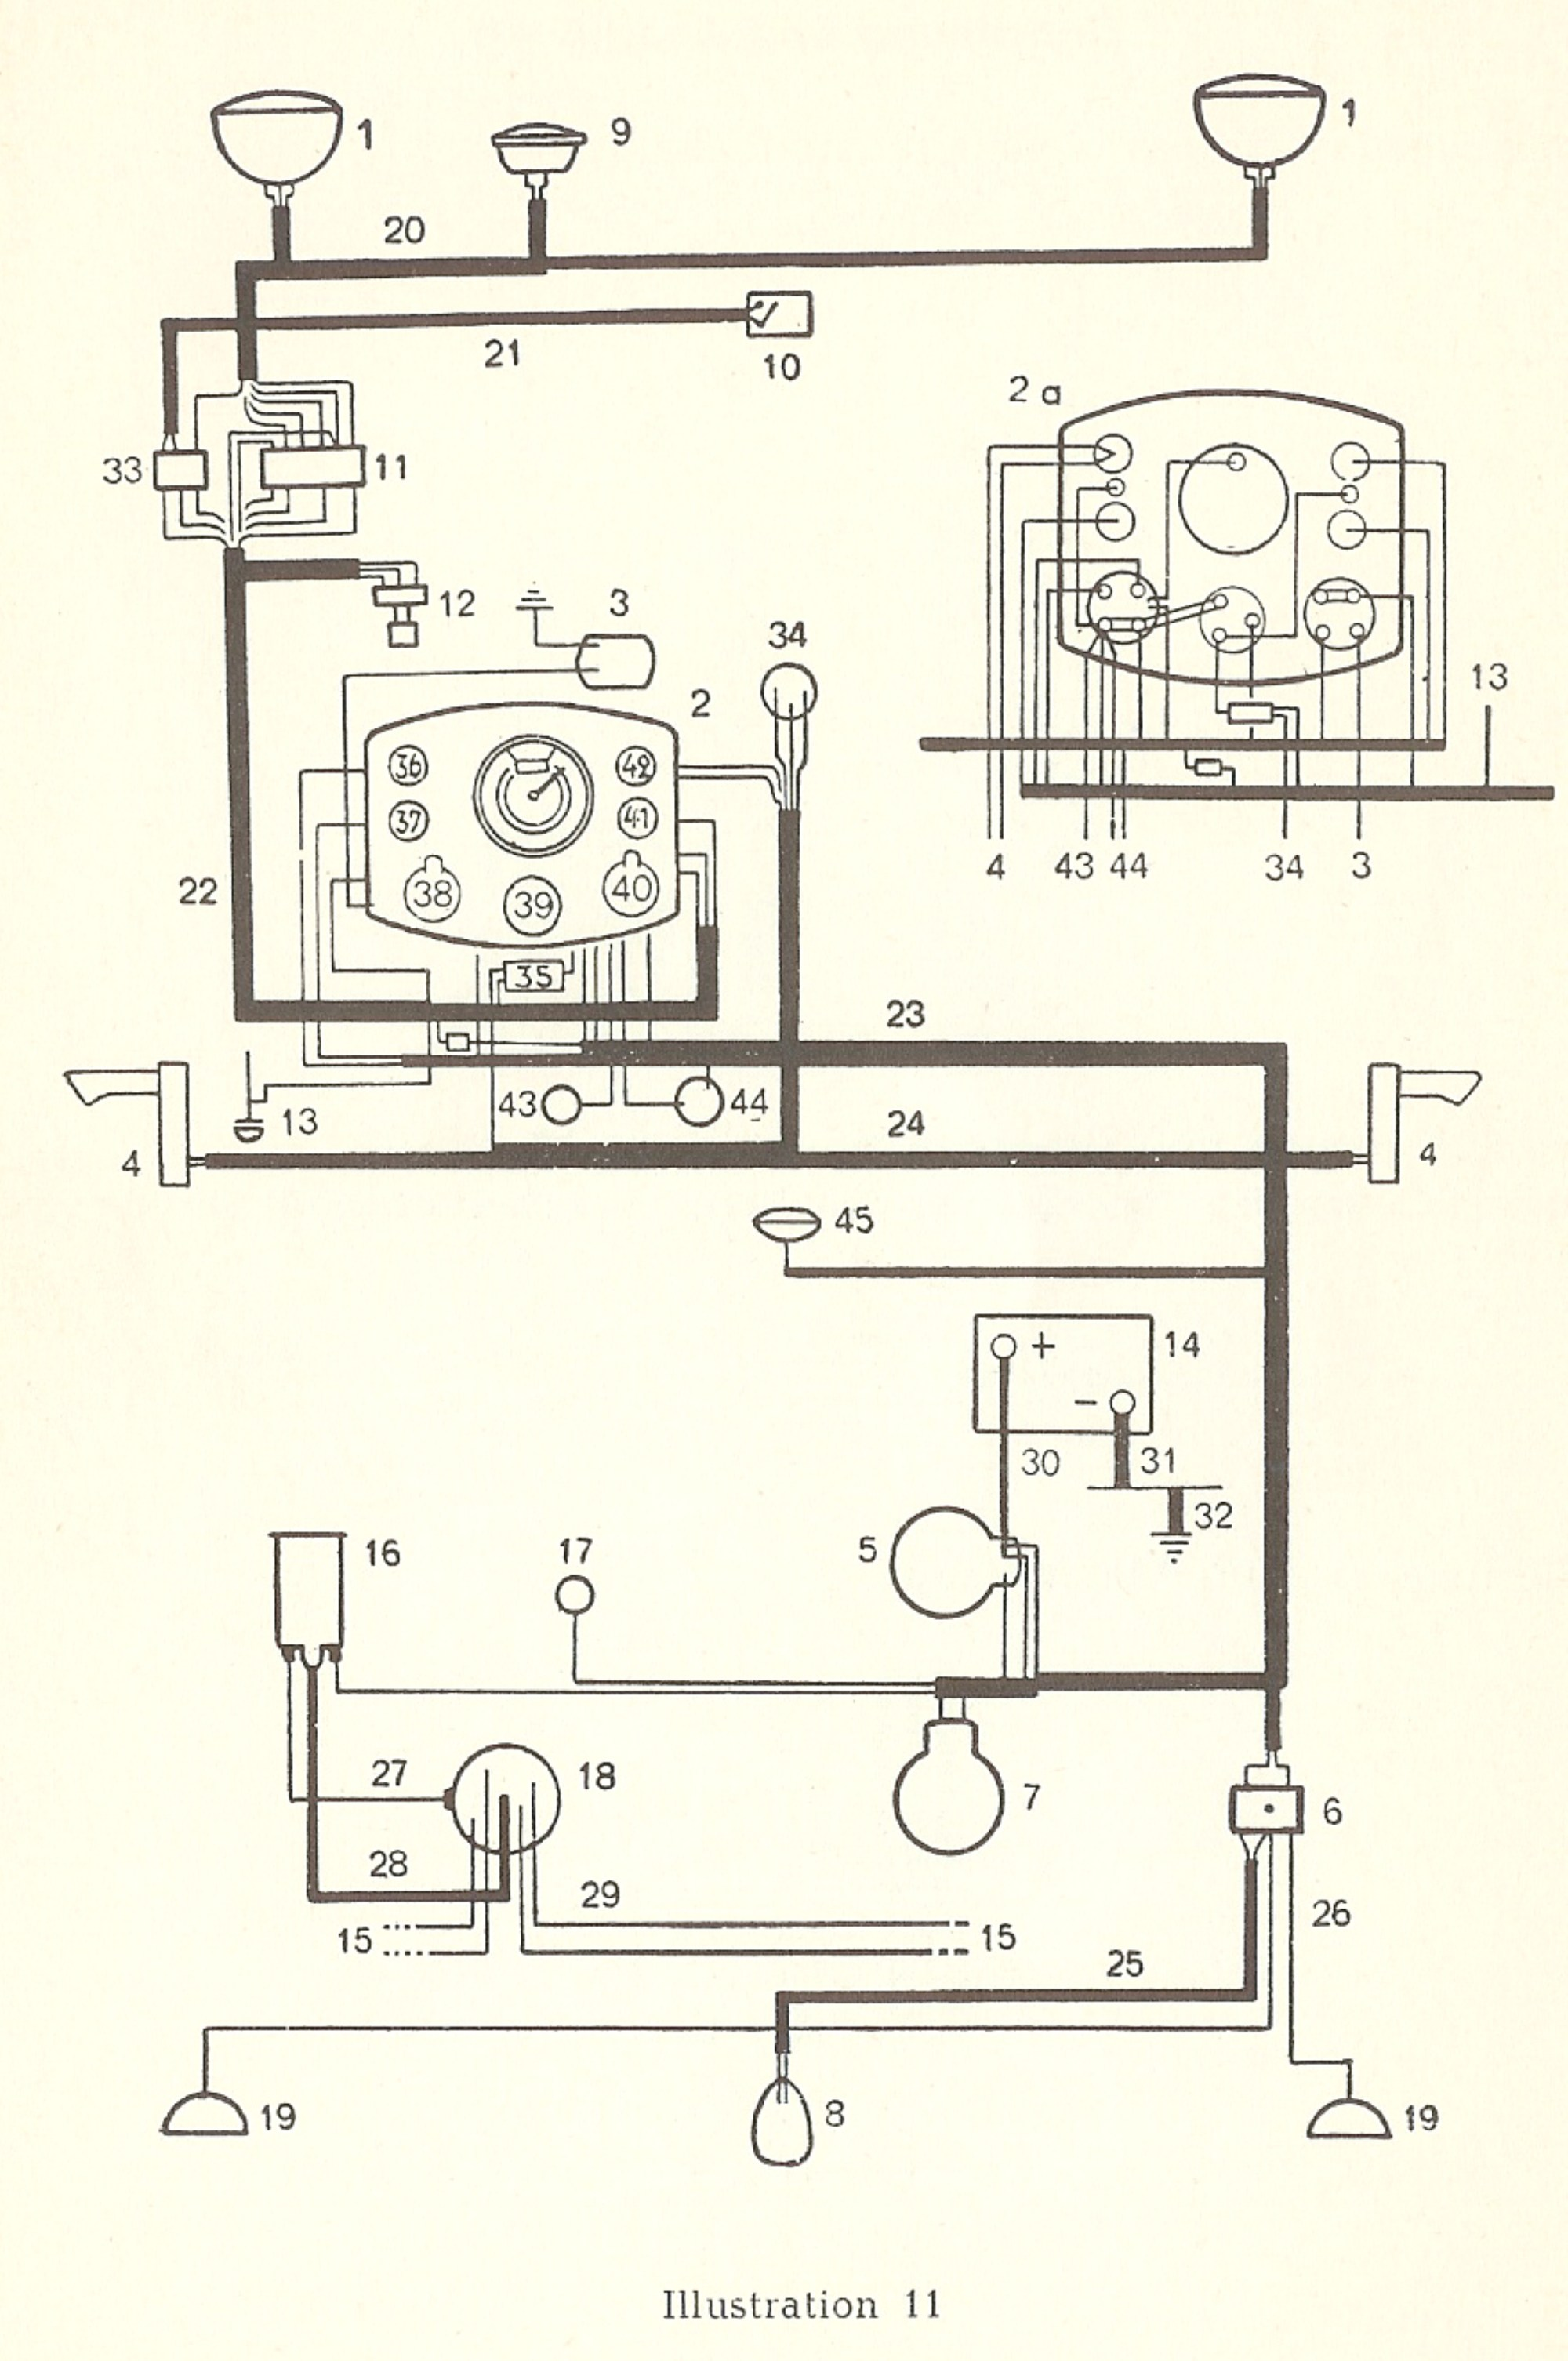 hight resolution of 1950 ford turn signal wiring diagram wiring library 1950 ford turn signal wiring diagram